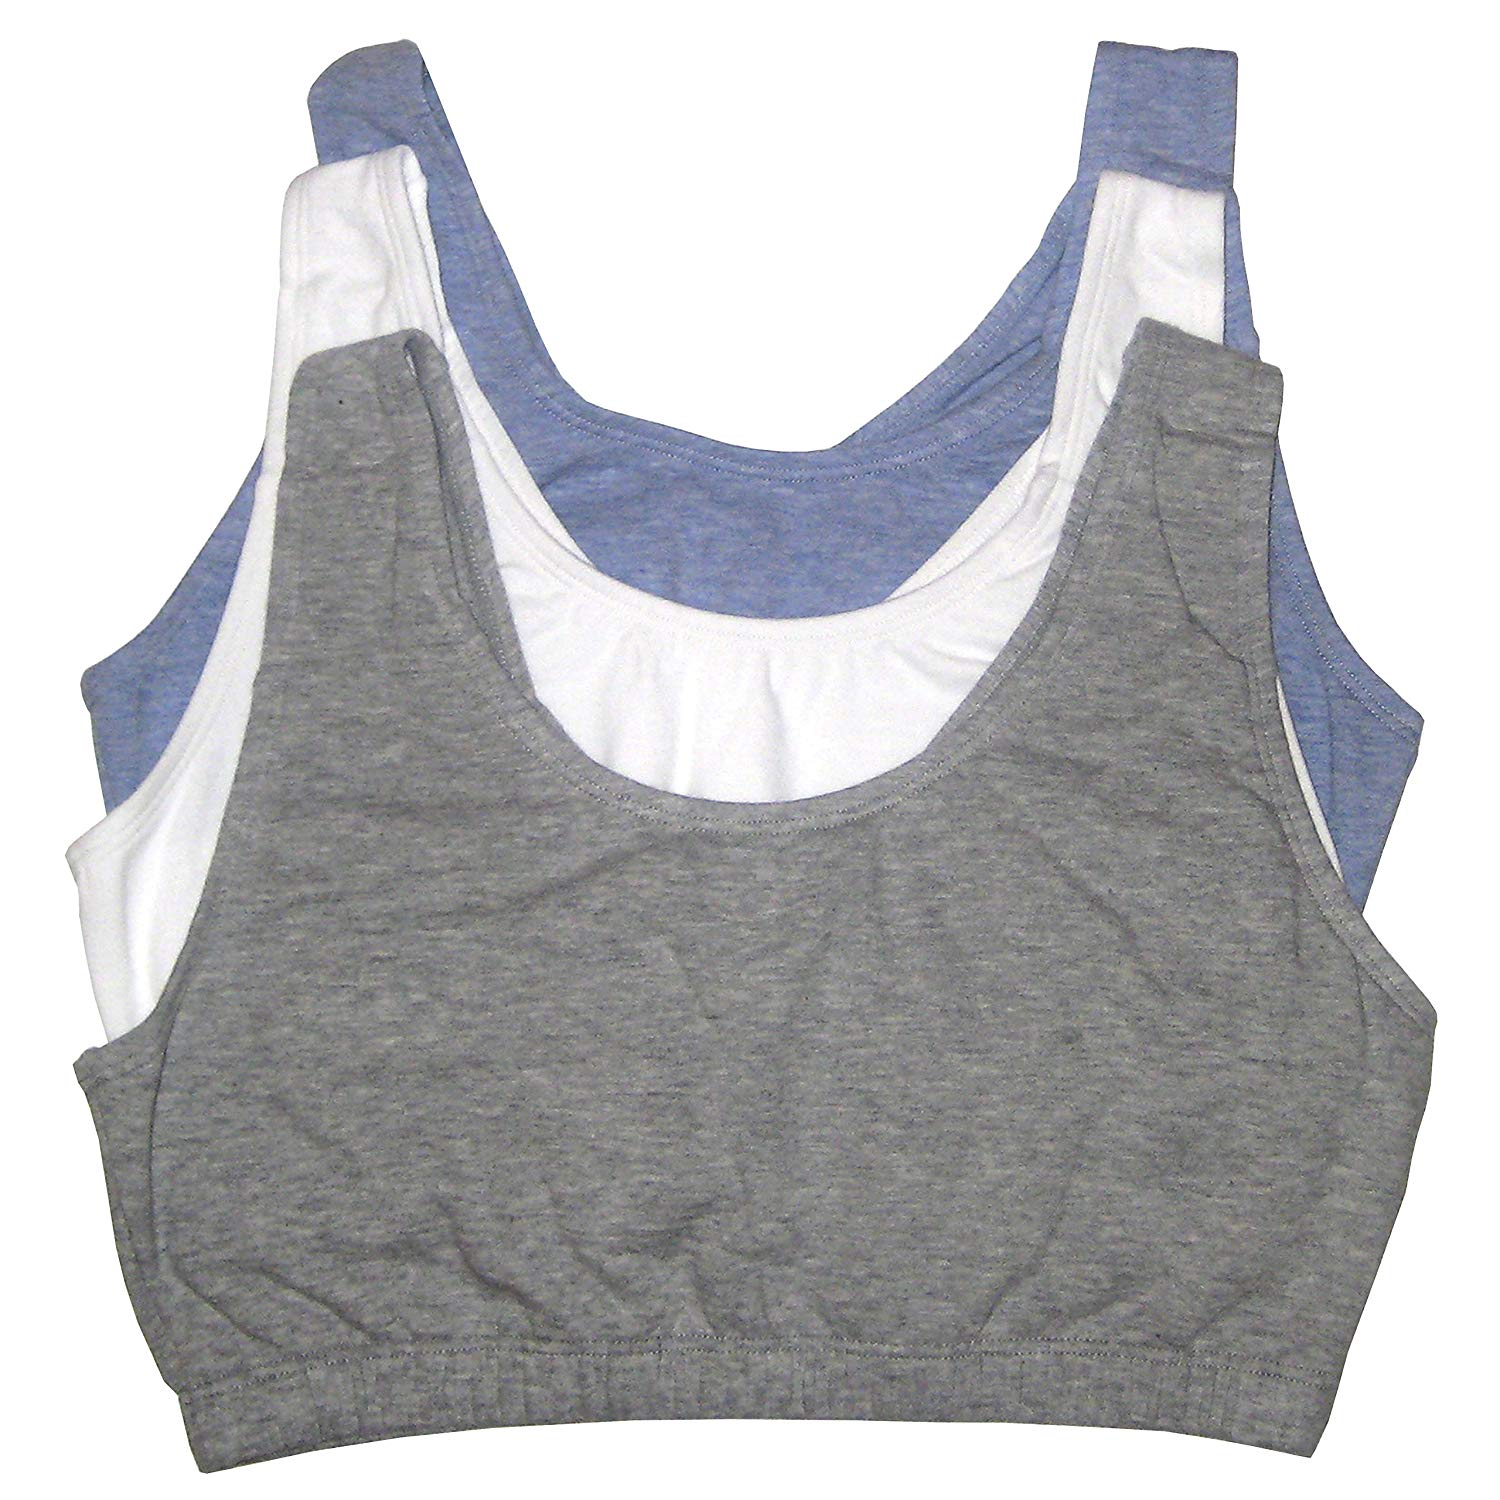 b543a4e3f59d7 Top-Rated Sports Bras 2019 Real Women Reviews